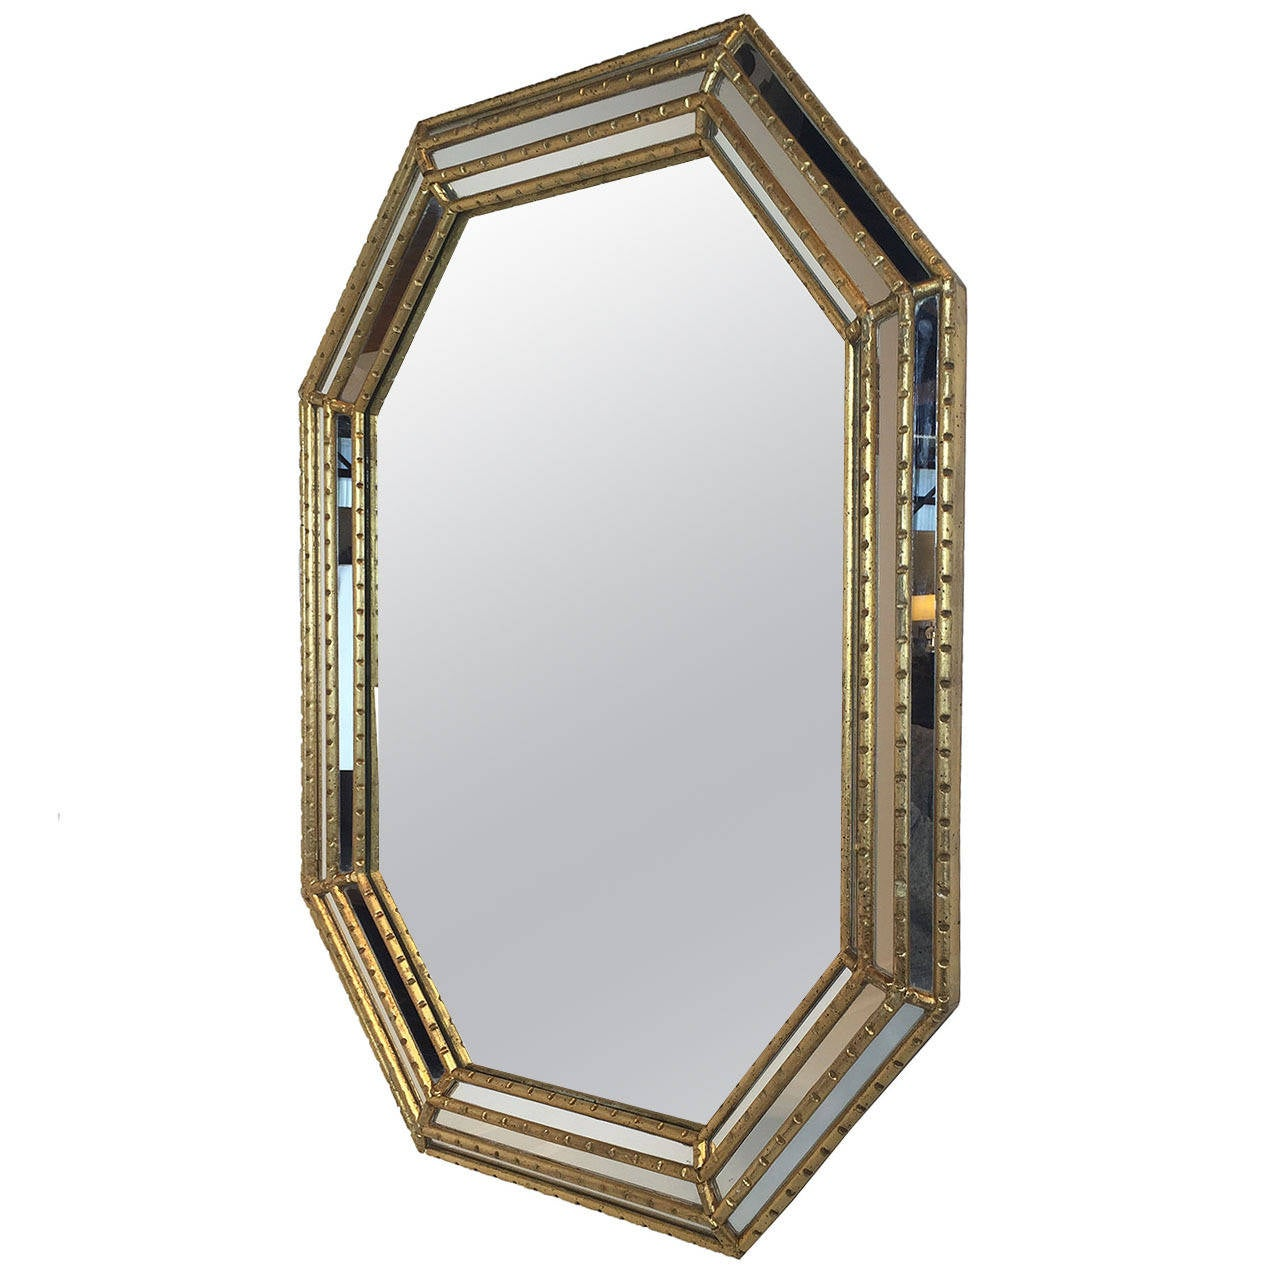 hexagonal faux bamboo beveled mirror by la barge 1